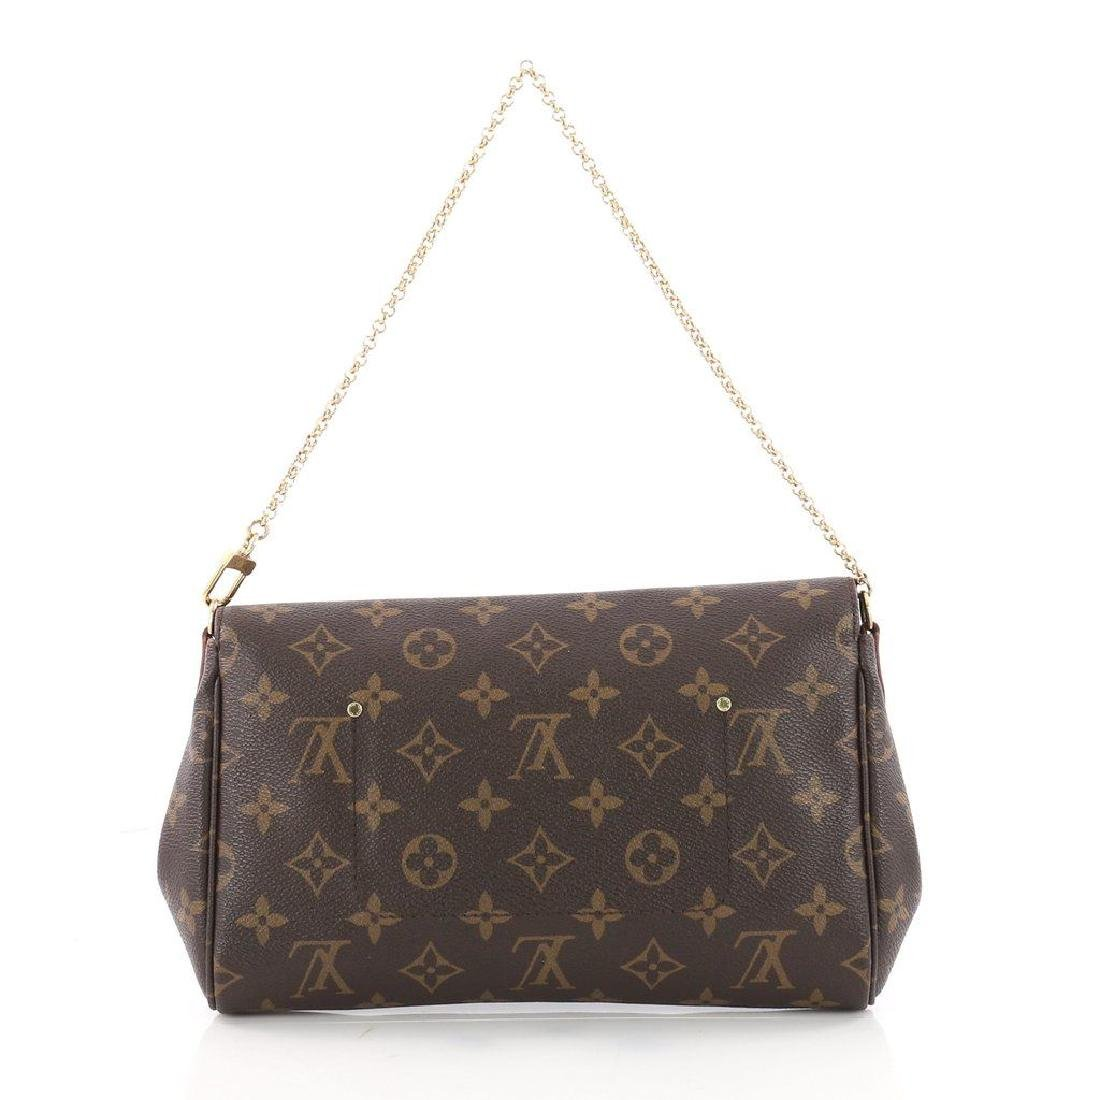 Authentic Louis Vuitton Favorite MM Crossbody Bag with - 3